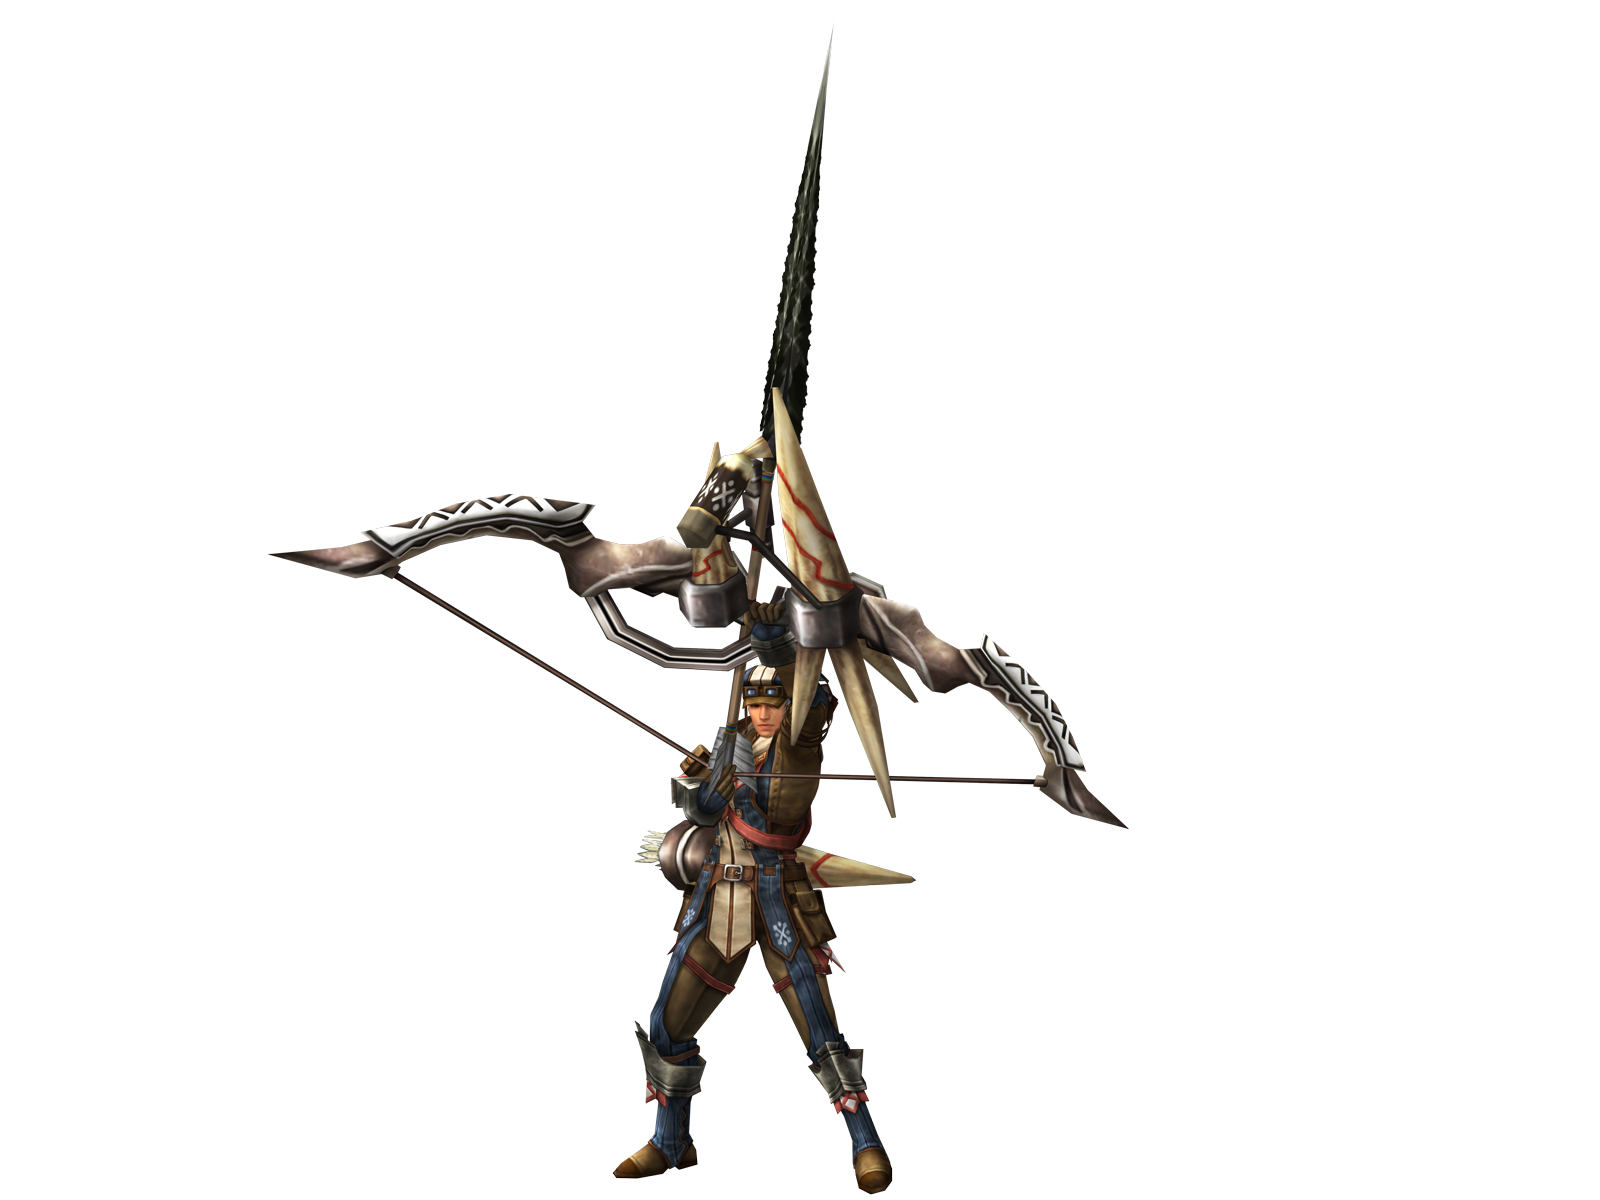 FrontierGen-Bow_Equipment_Render_006.png